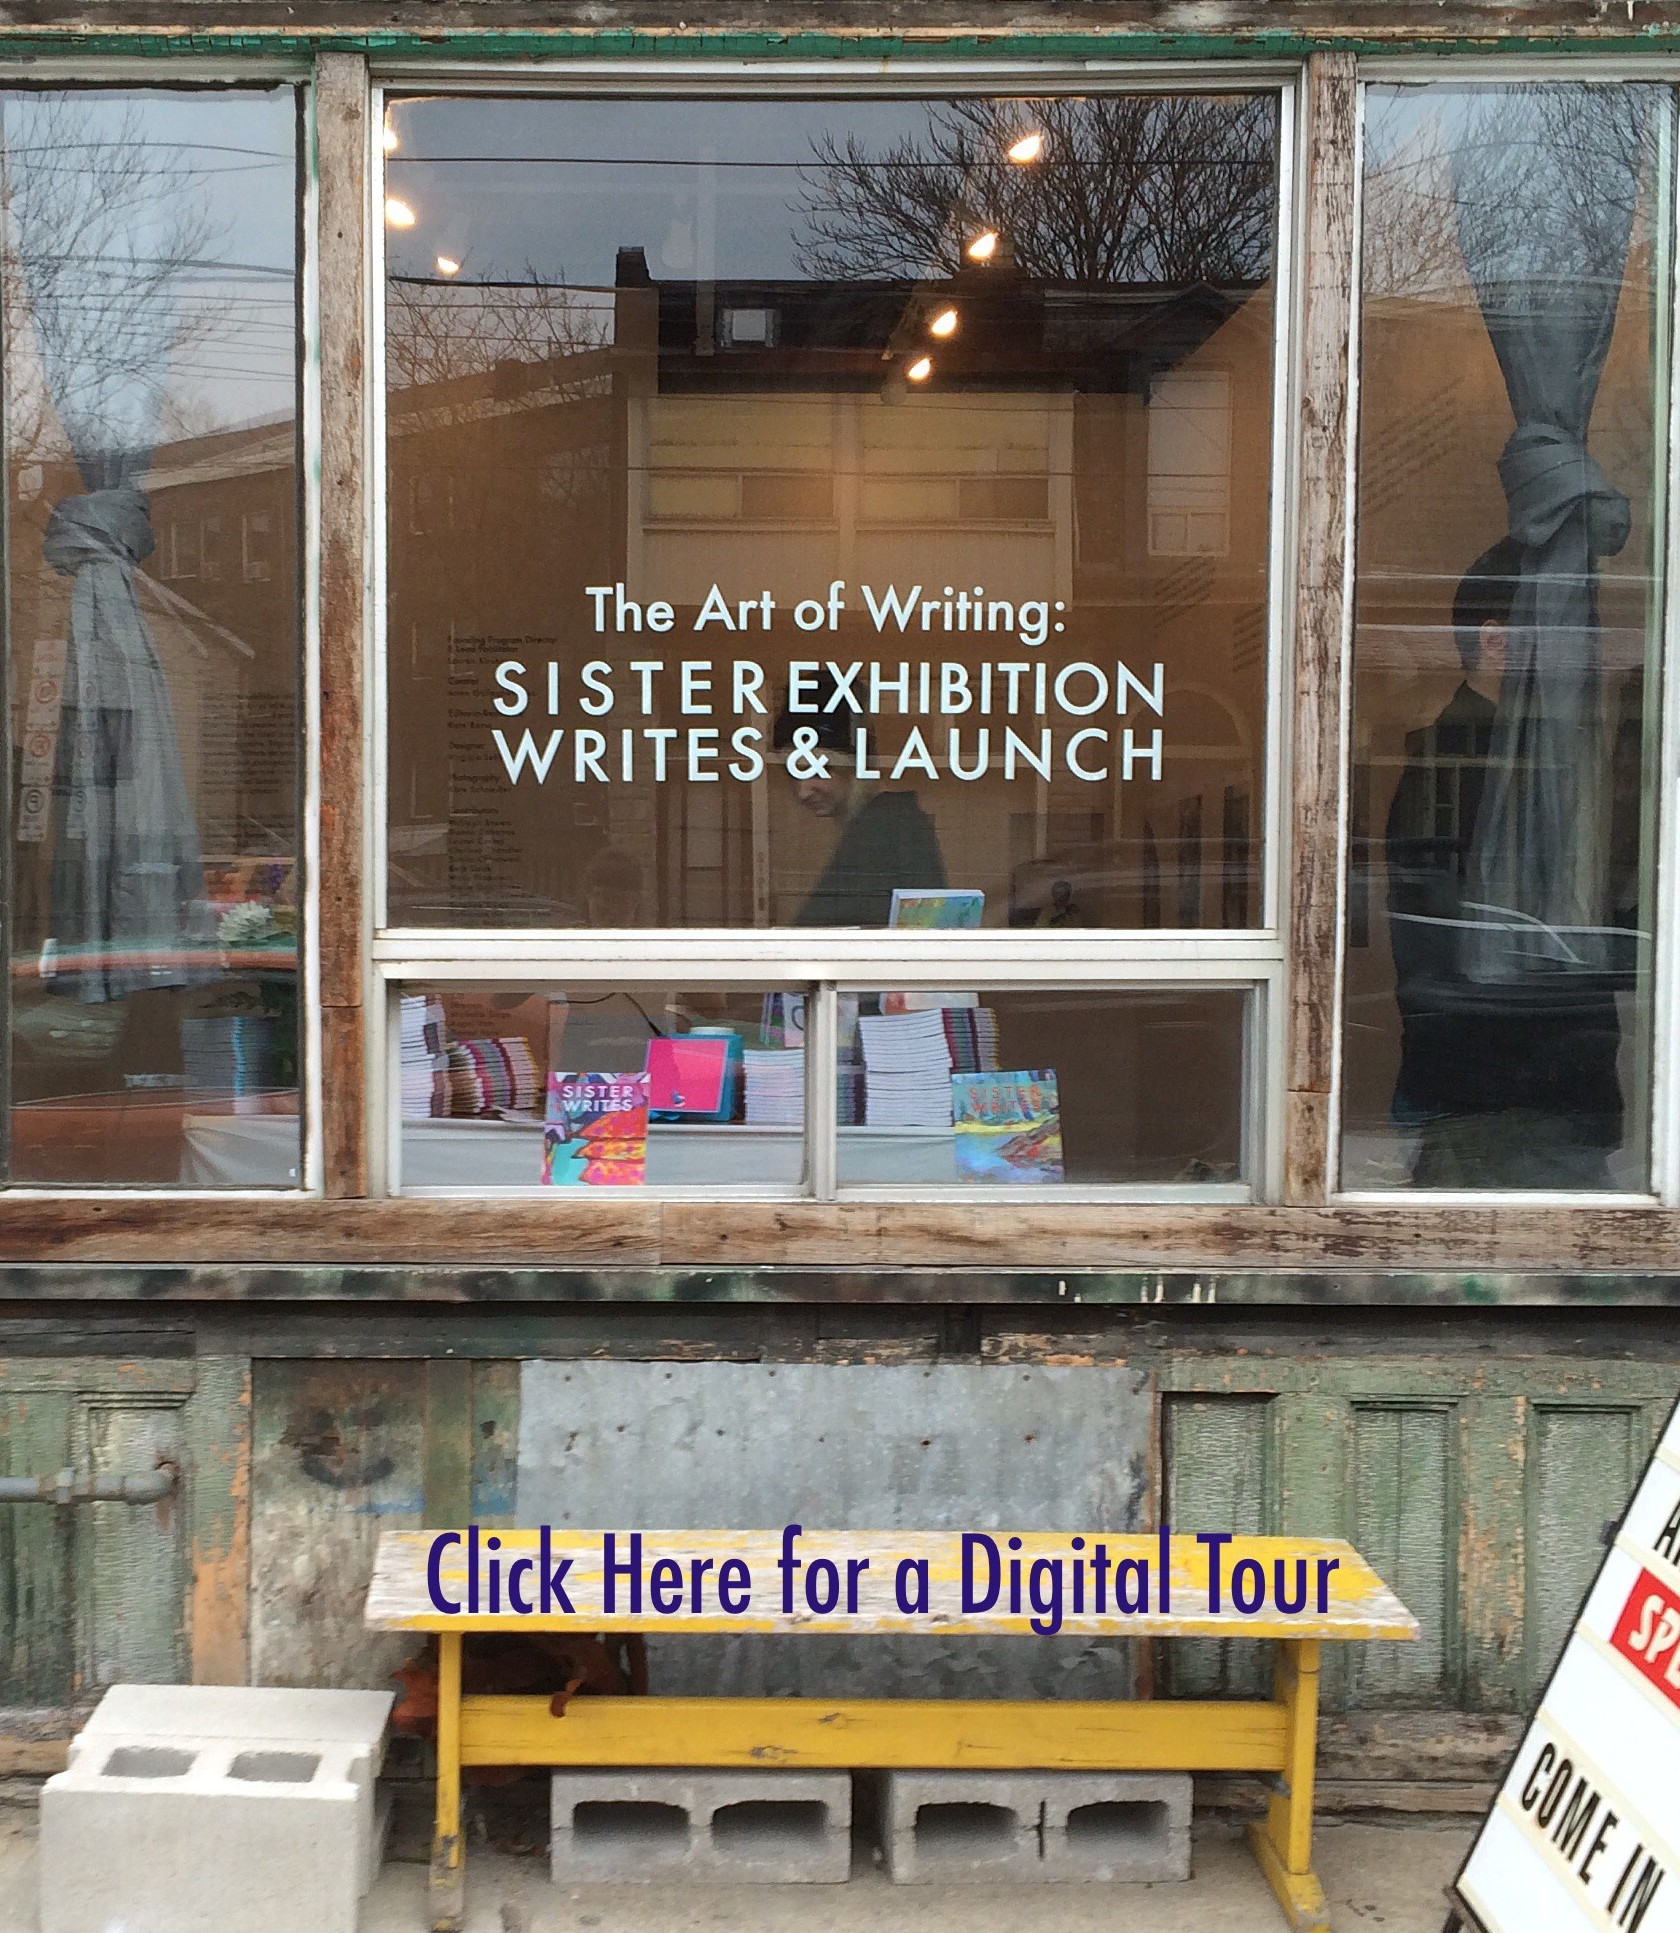 The Art of Writing: Sister Writes Exhibition & Launch